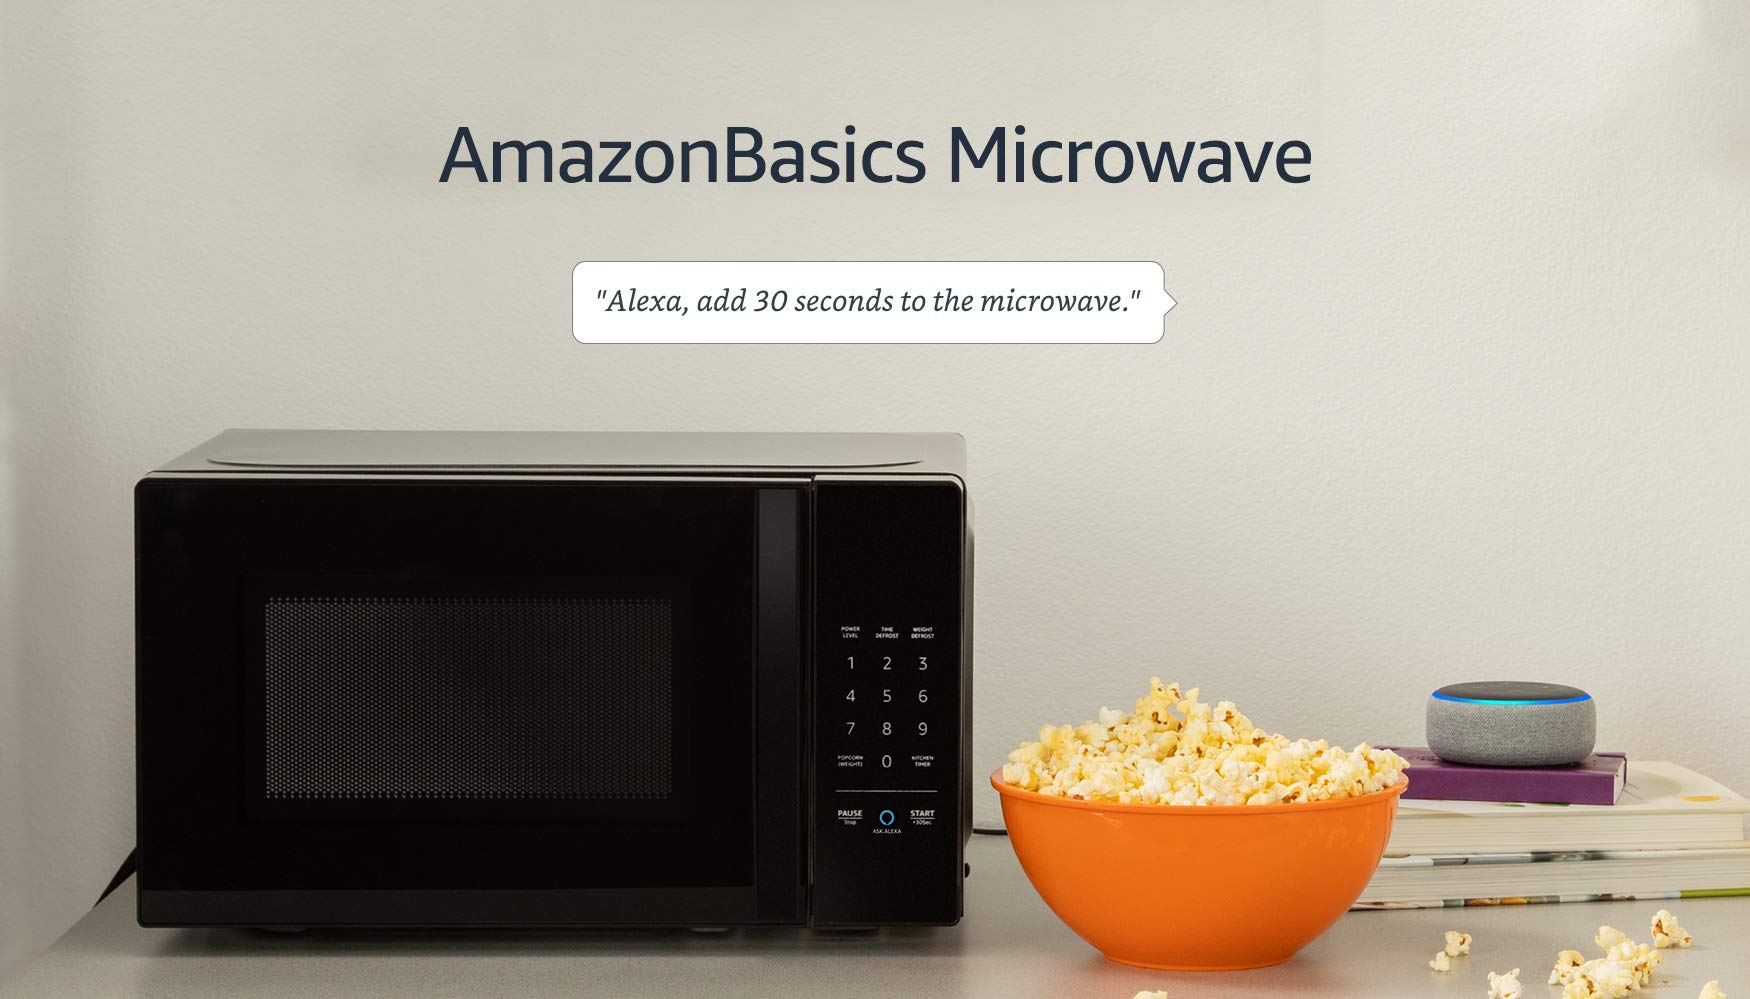 Amazon Basics Microwave bundle with Echo Dot (3rd Gen) - Charcoal 8 Now it's easier to defrost vegetables, make popcorn, cook potatoes, and reheat rice. With an Echo device (not included), quick-cook voice presets and a simplified keypad let you just ask Alexa to start microwaving. Automatically reorder popcorn when you run low and save 10% on popcorn orders-enabled by Amazon Dash Replenishment technology Compact size saves counter space, plus 10 power levels, a kitchen timer, a child lock, and a turntable.